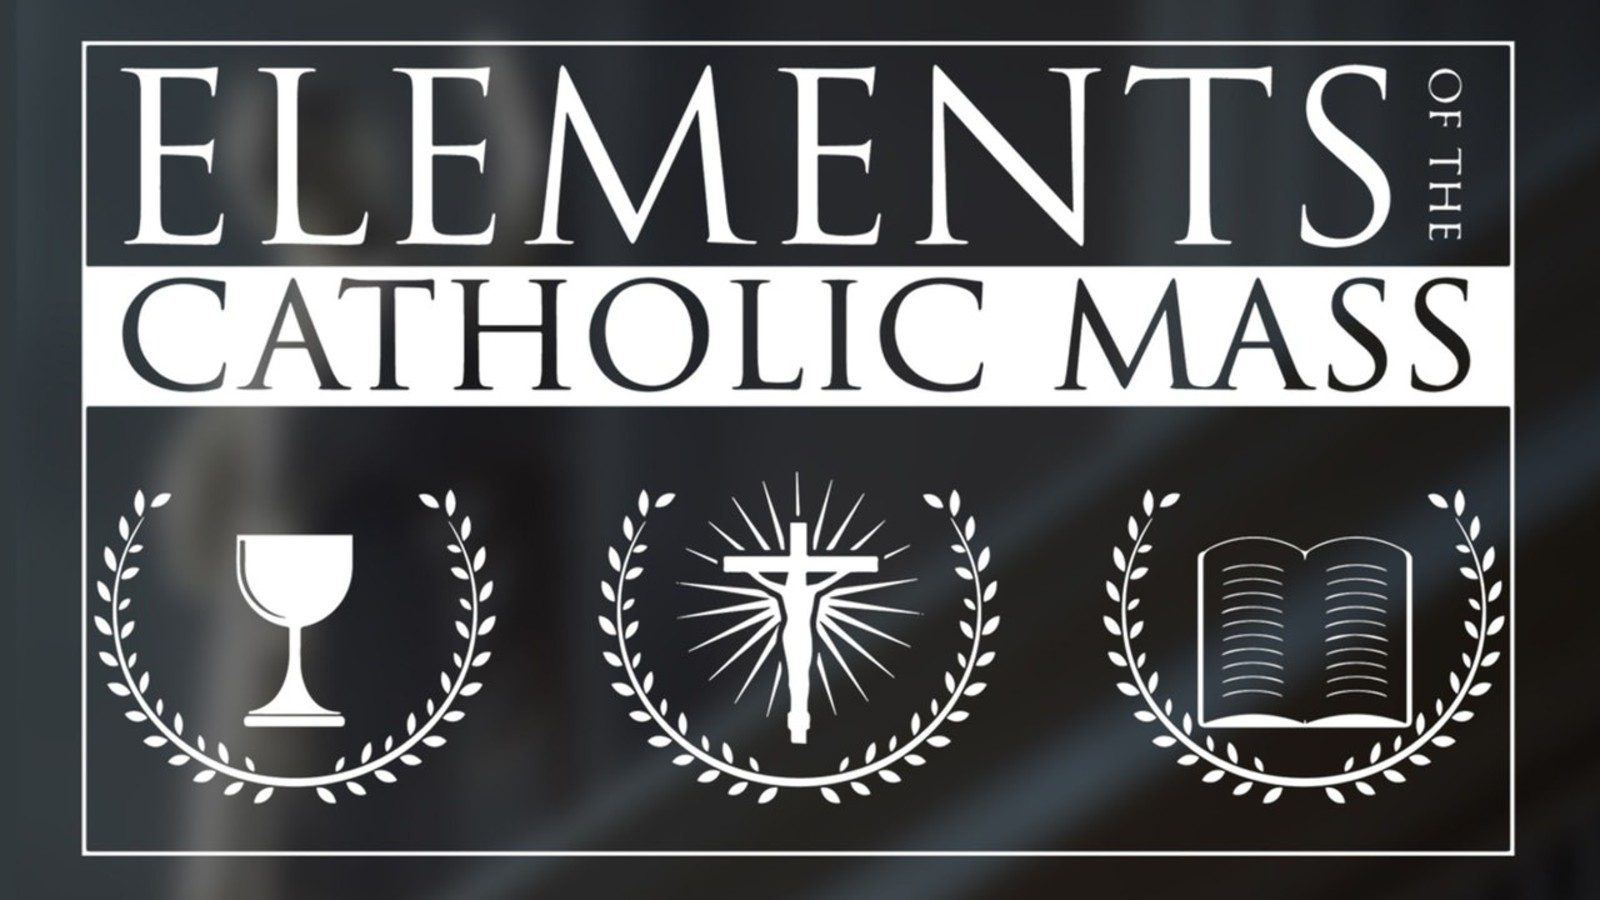 Elements Of The Mass